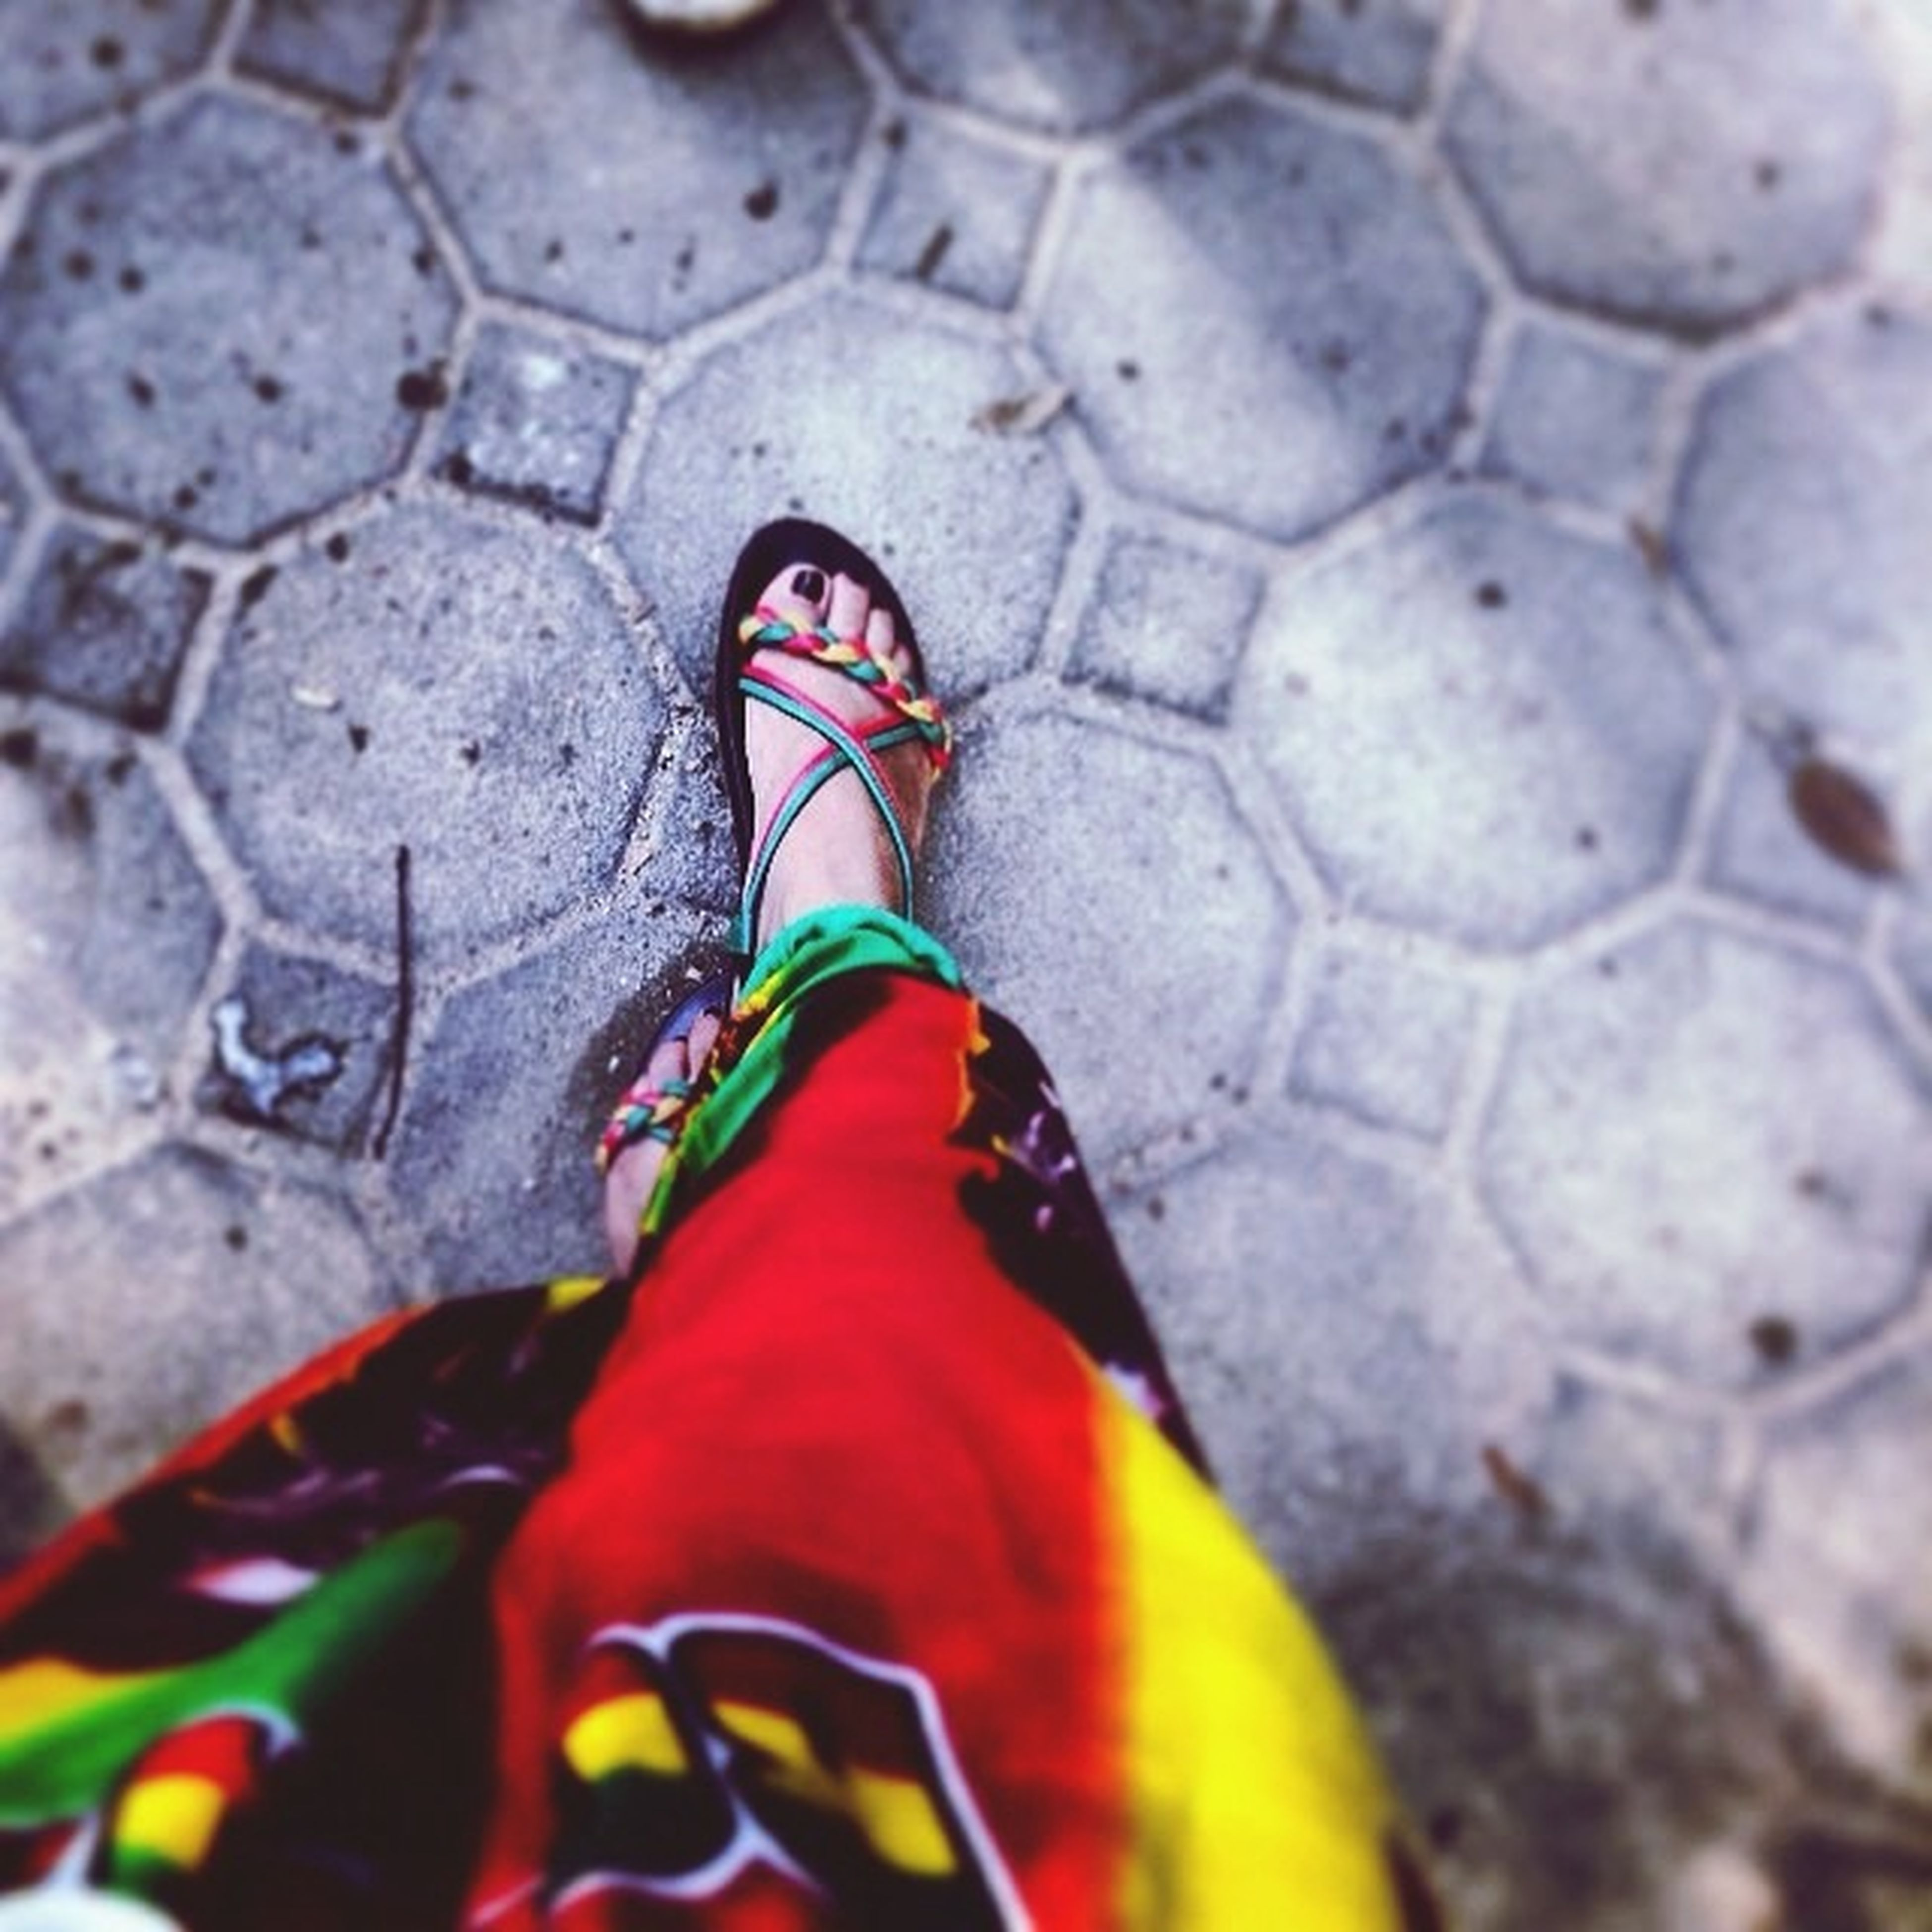 low section, shoe, person, high angle view, footwear, close-up, pattern, multi colored, ground, textured, red, day, outdoors, unrecognizable person, human foot, part of, pair